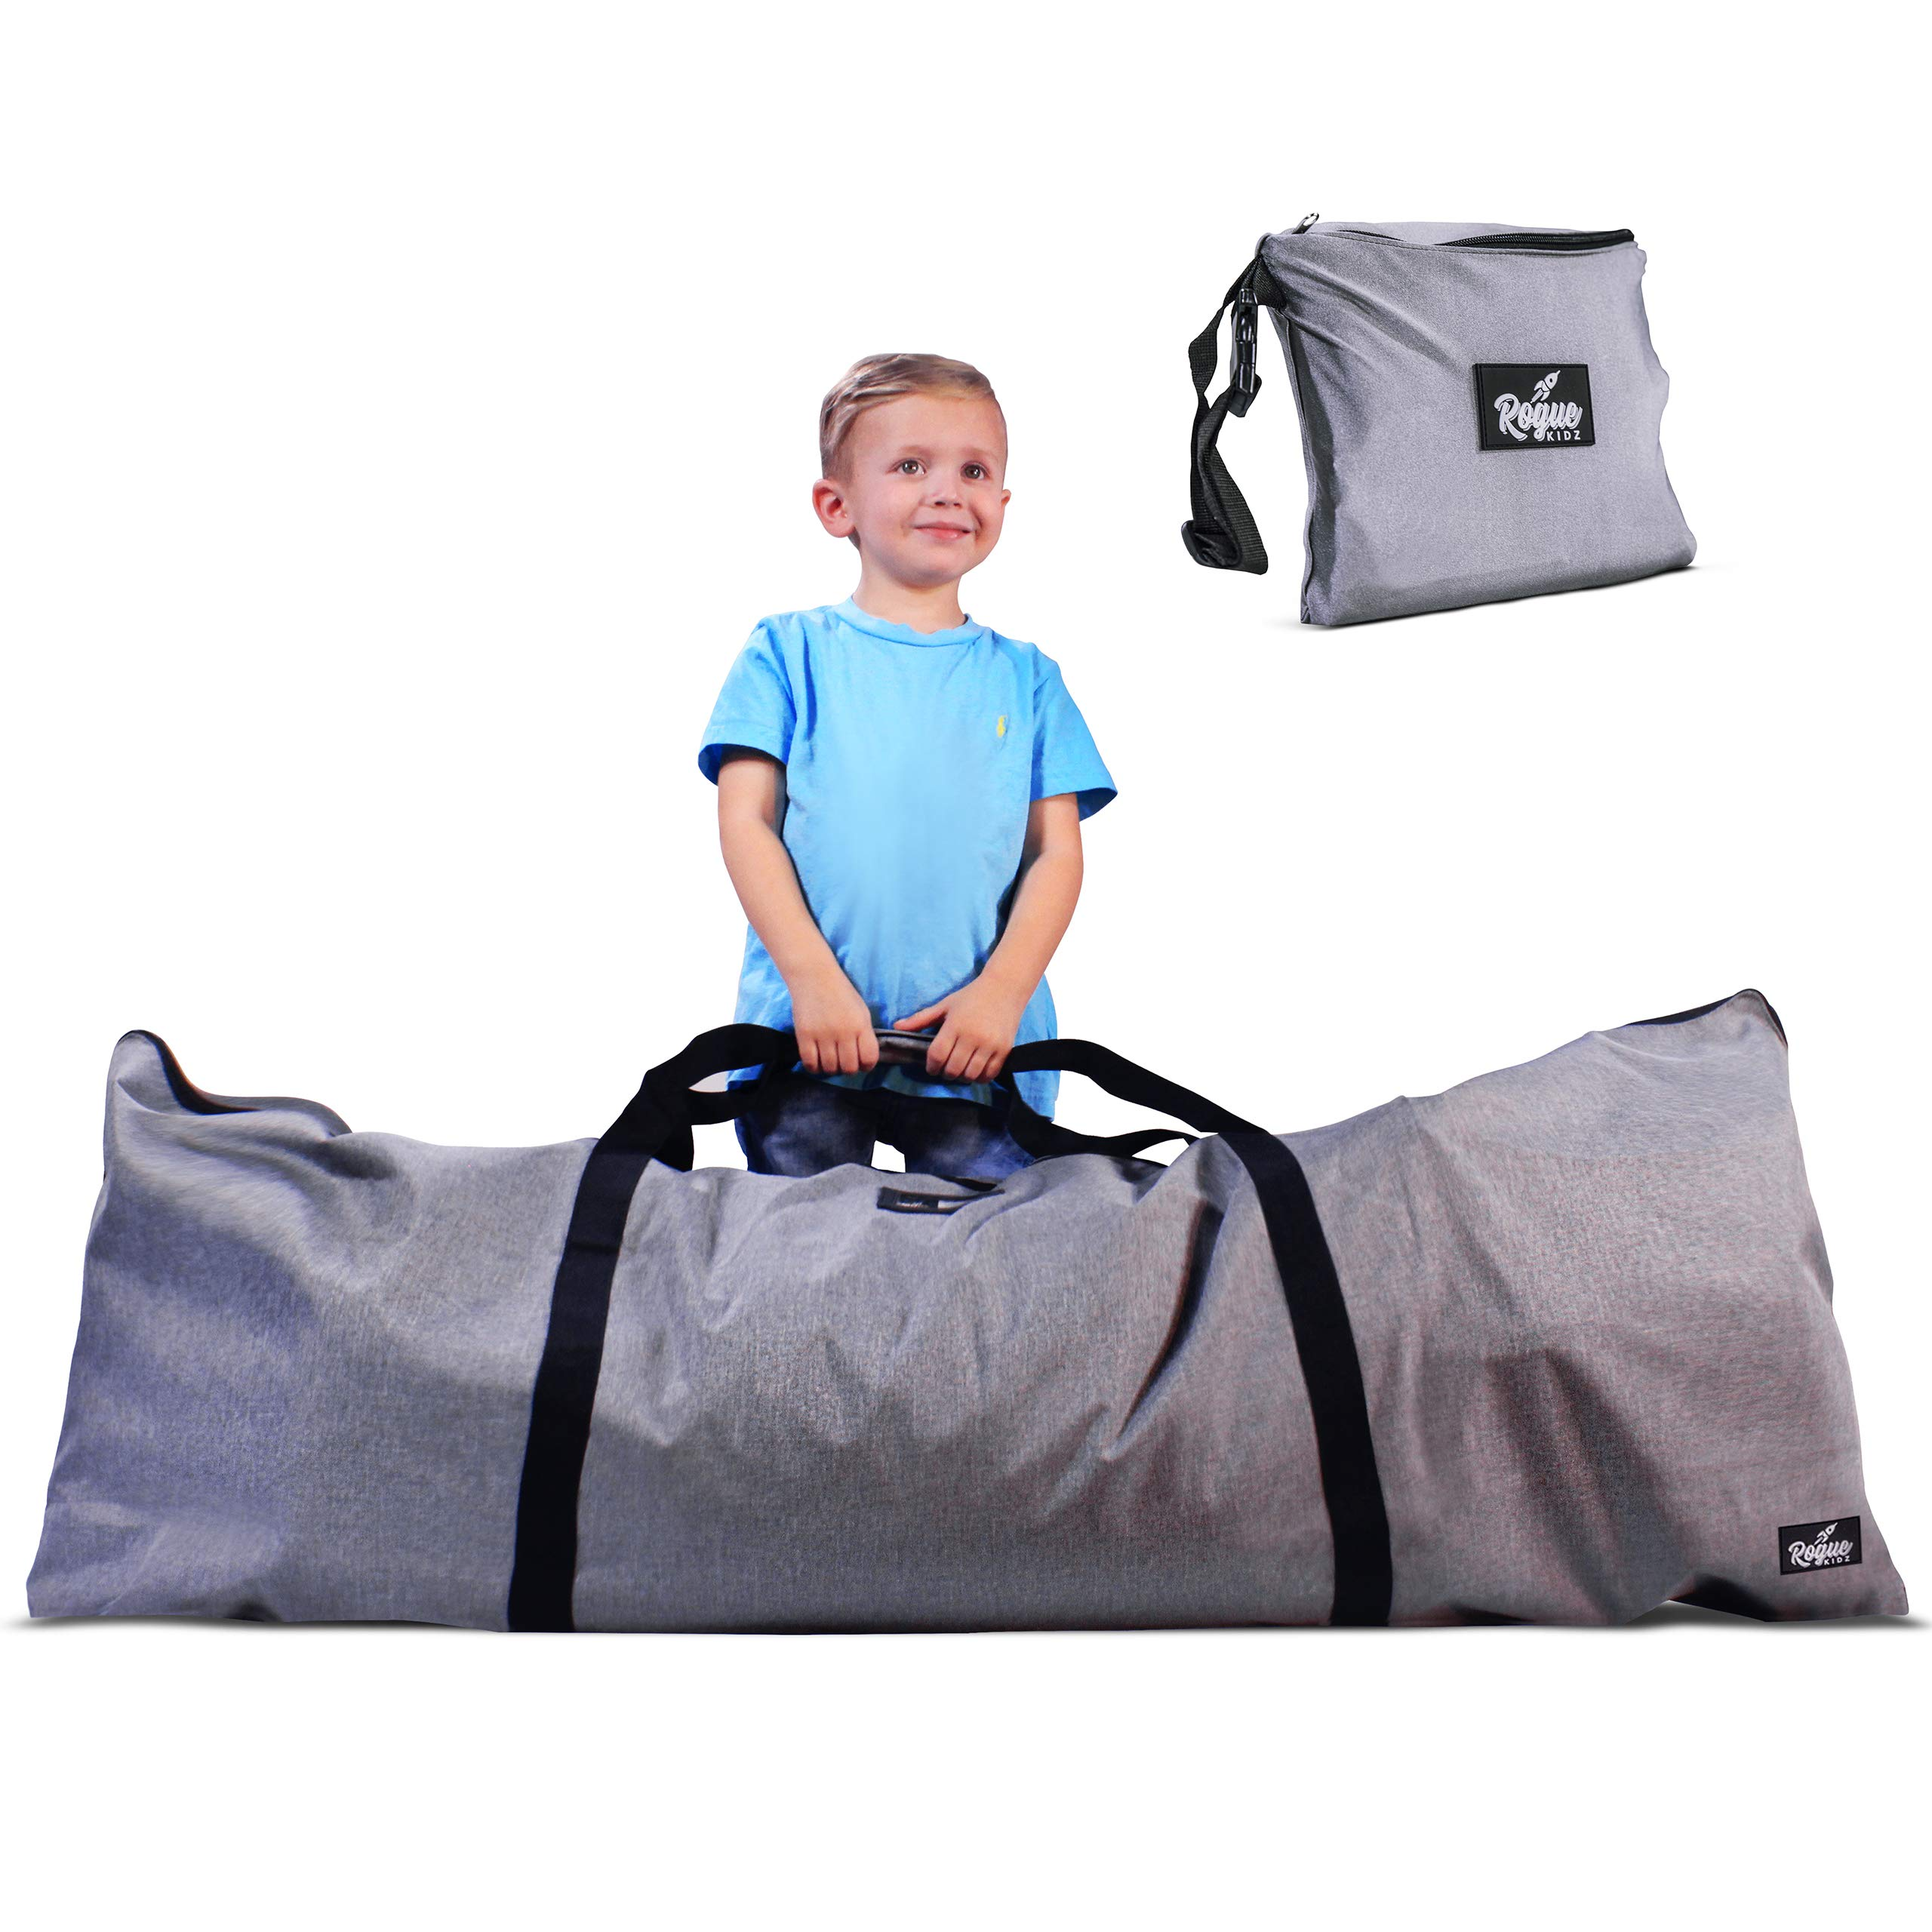 Rogue Kidz Umbrella Stroller Travel Bag And Playmat For Airplane Gate Check- Durable And Waterproof For Travelling With Toddlers And Babies by Rogue Kidz